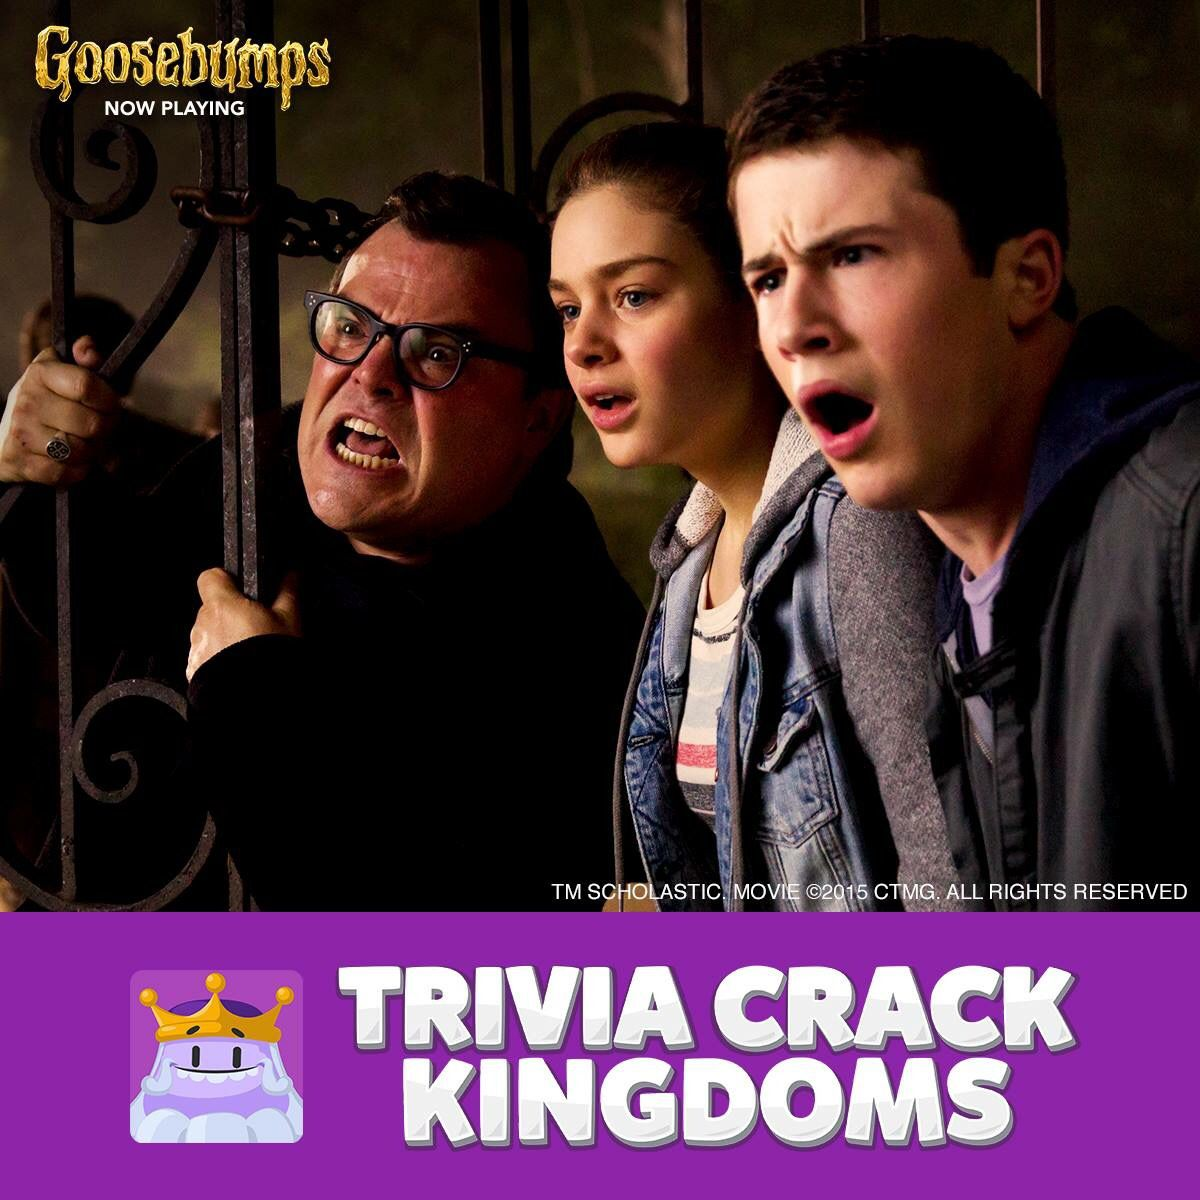 Goosebumps Trivia Crack Kingdoms